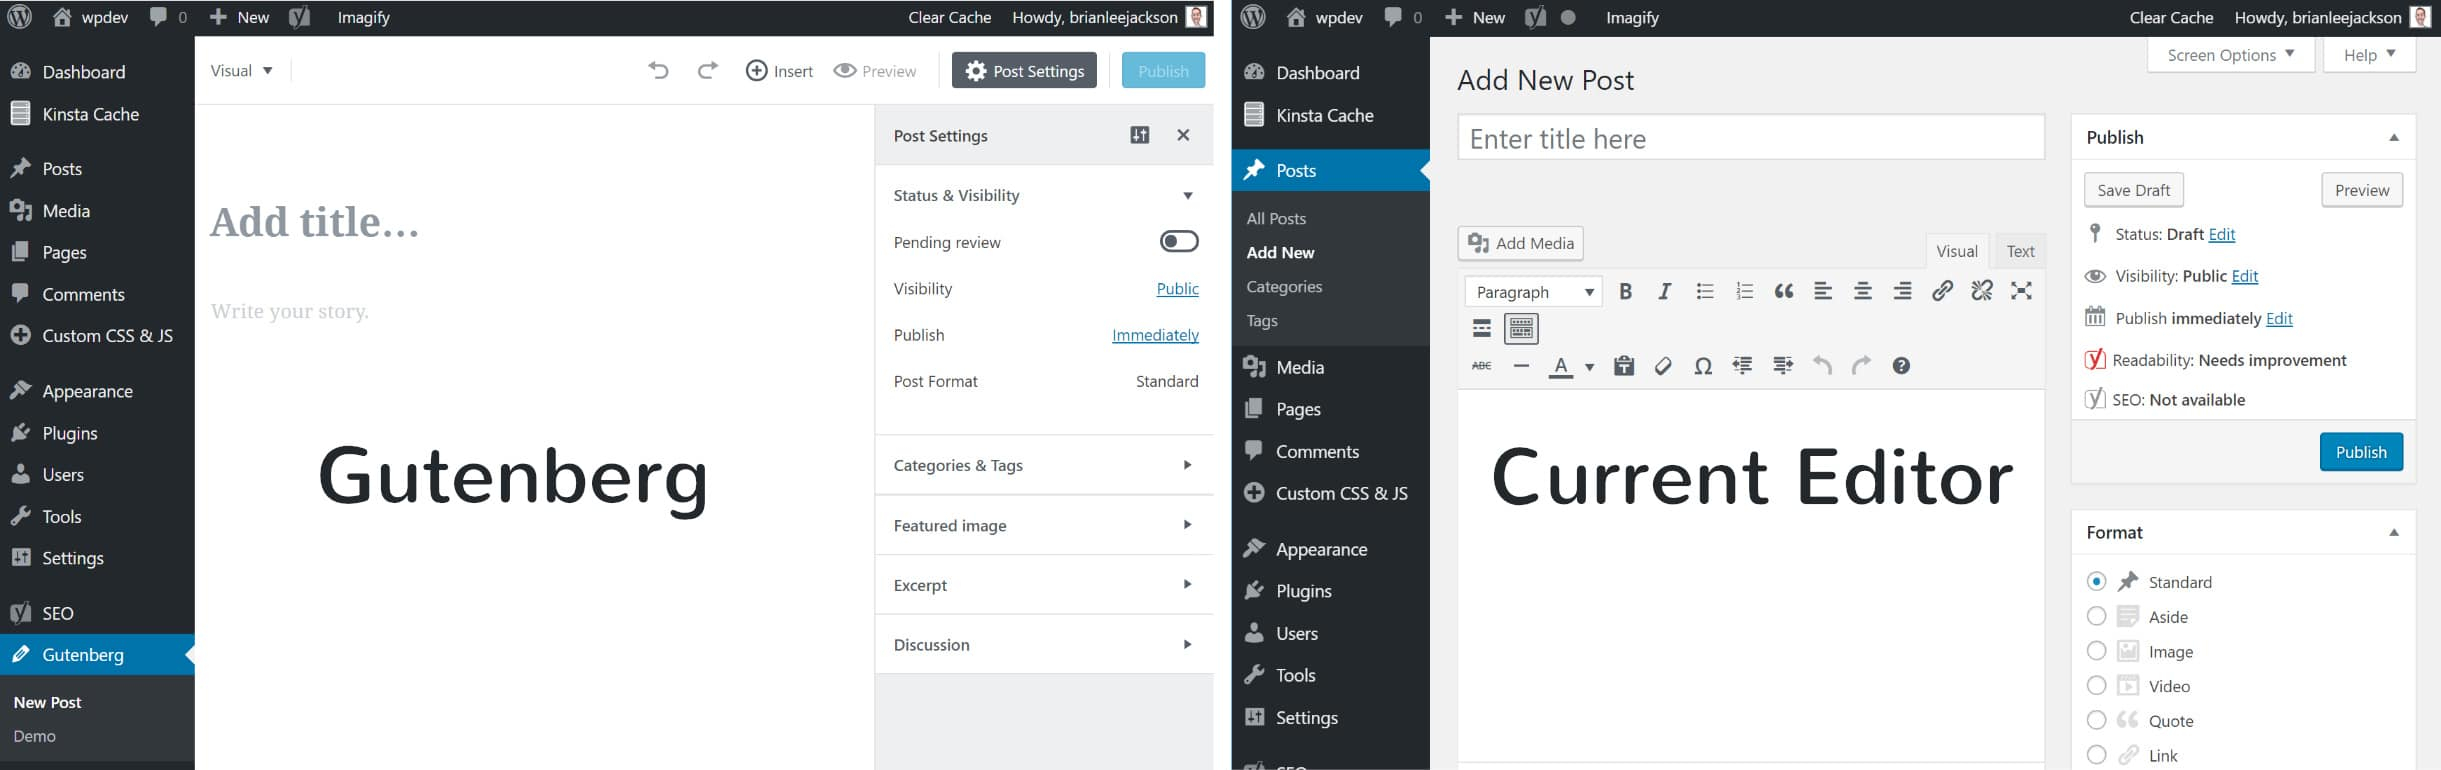 Comparison between Gutenberg and Classic Editor